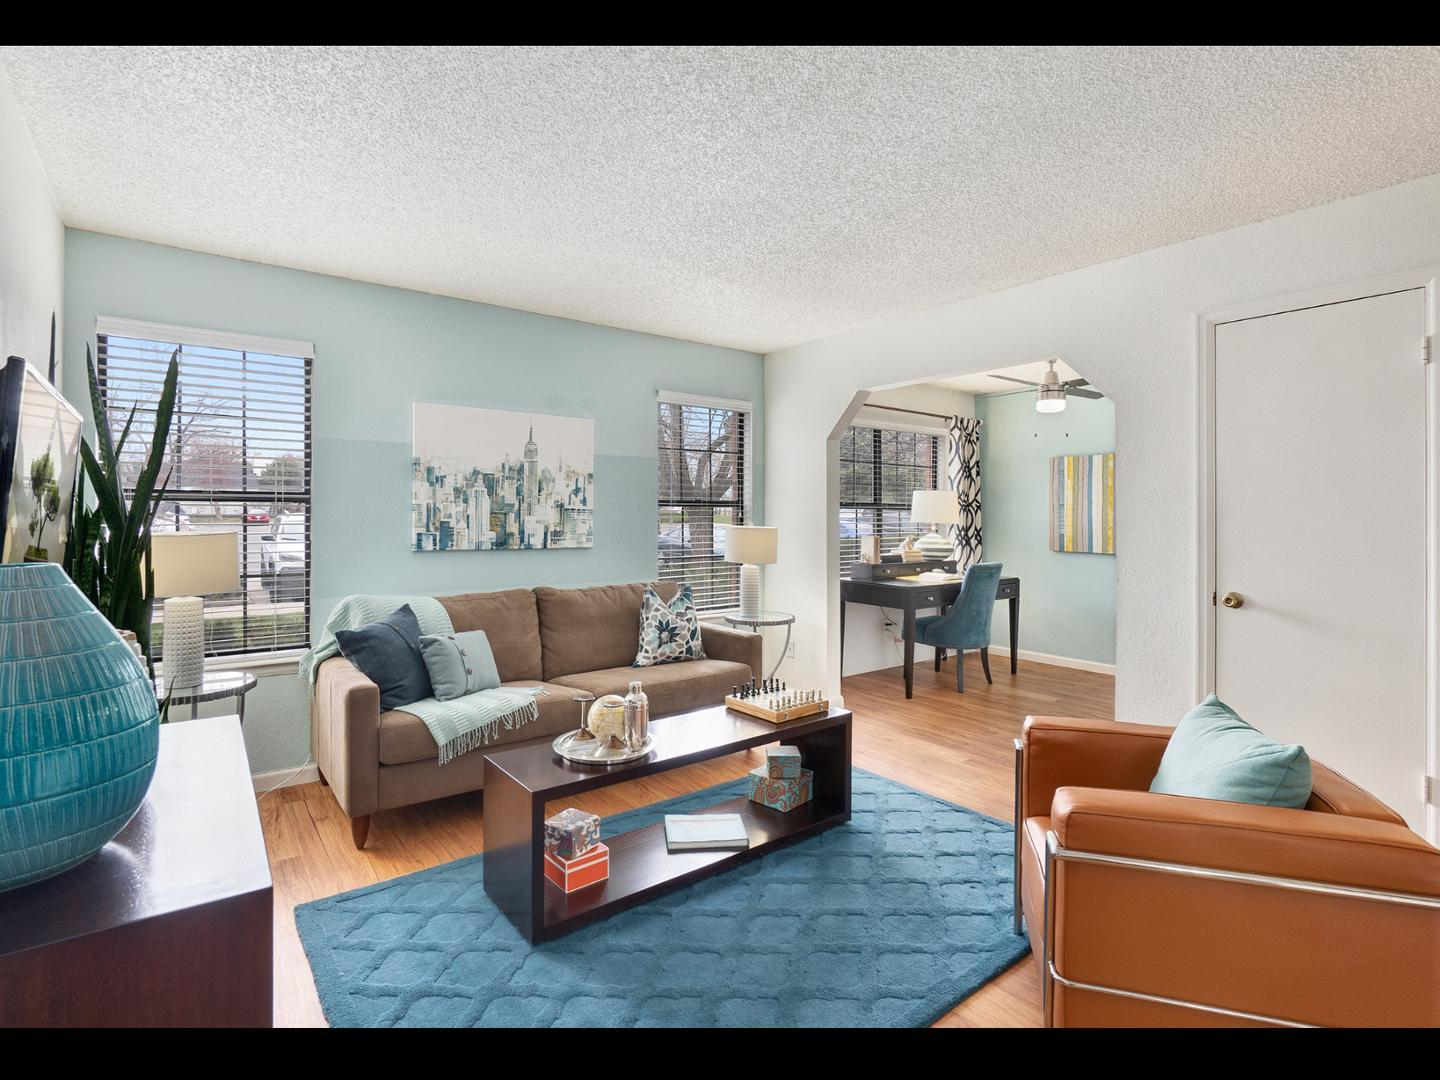 4470 South Lemay Avenue #0318 - 1324USD / month